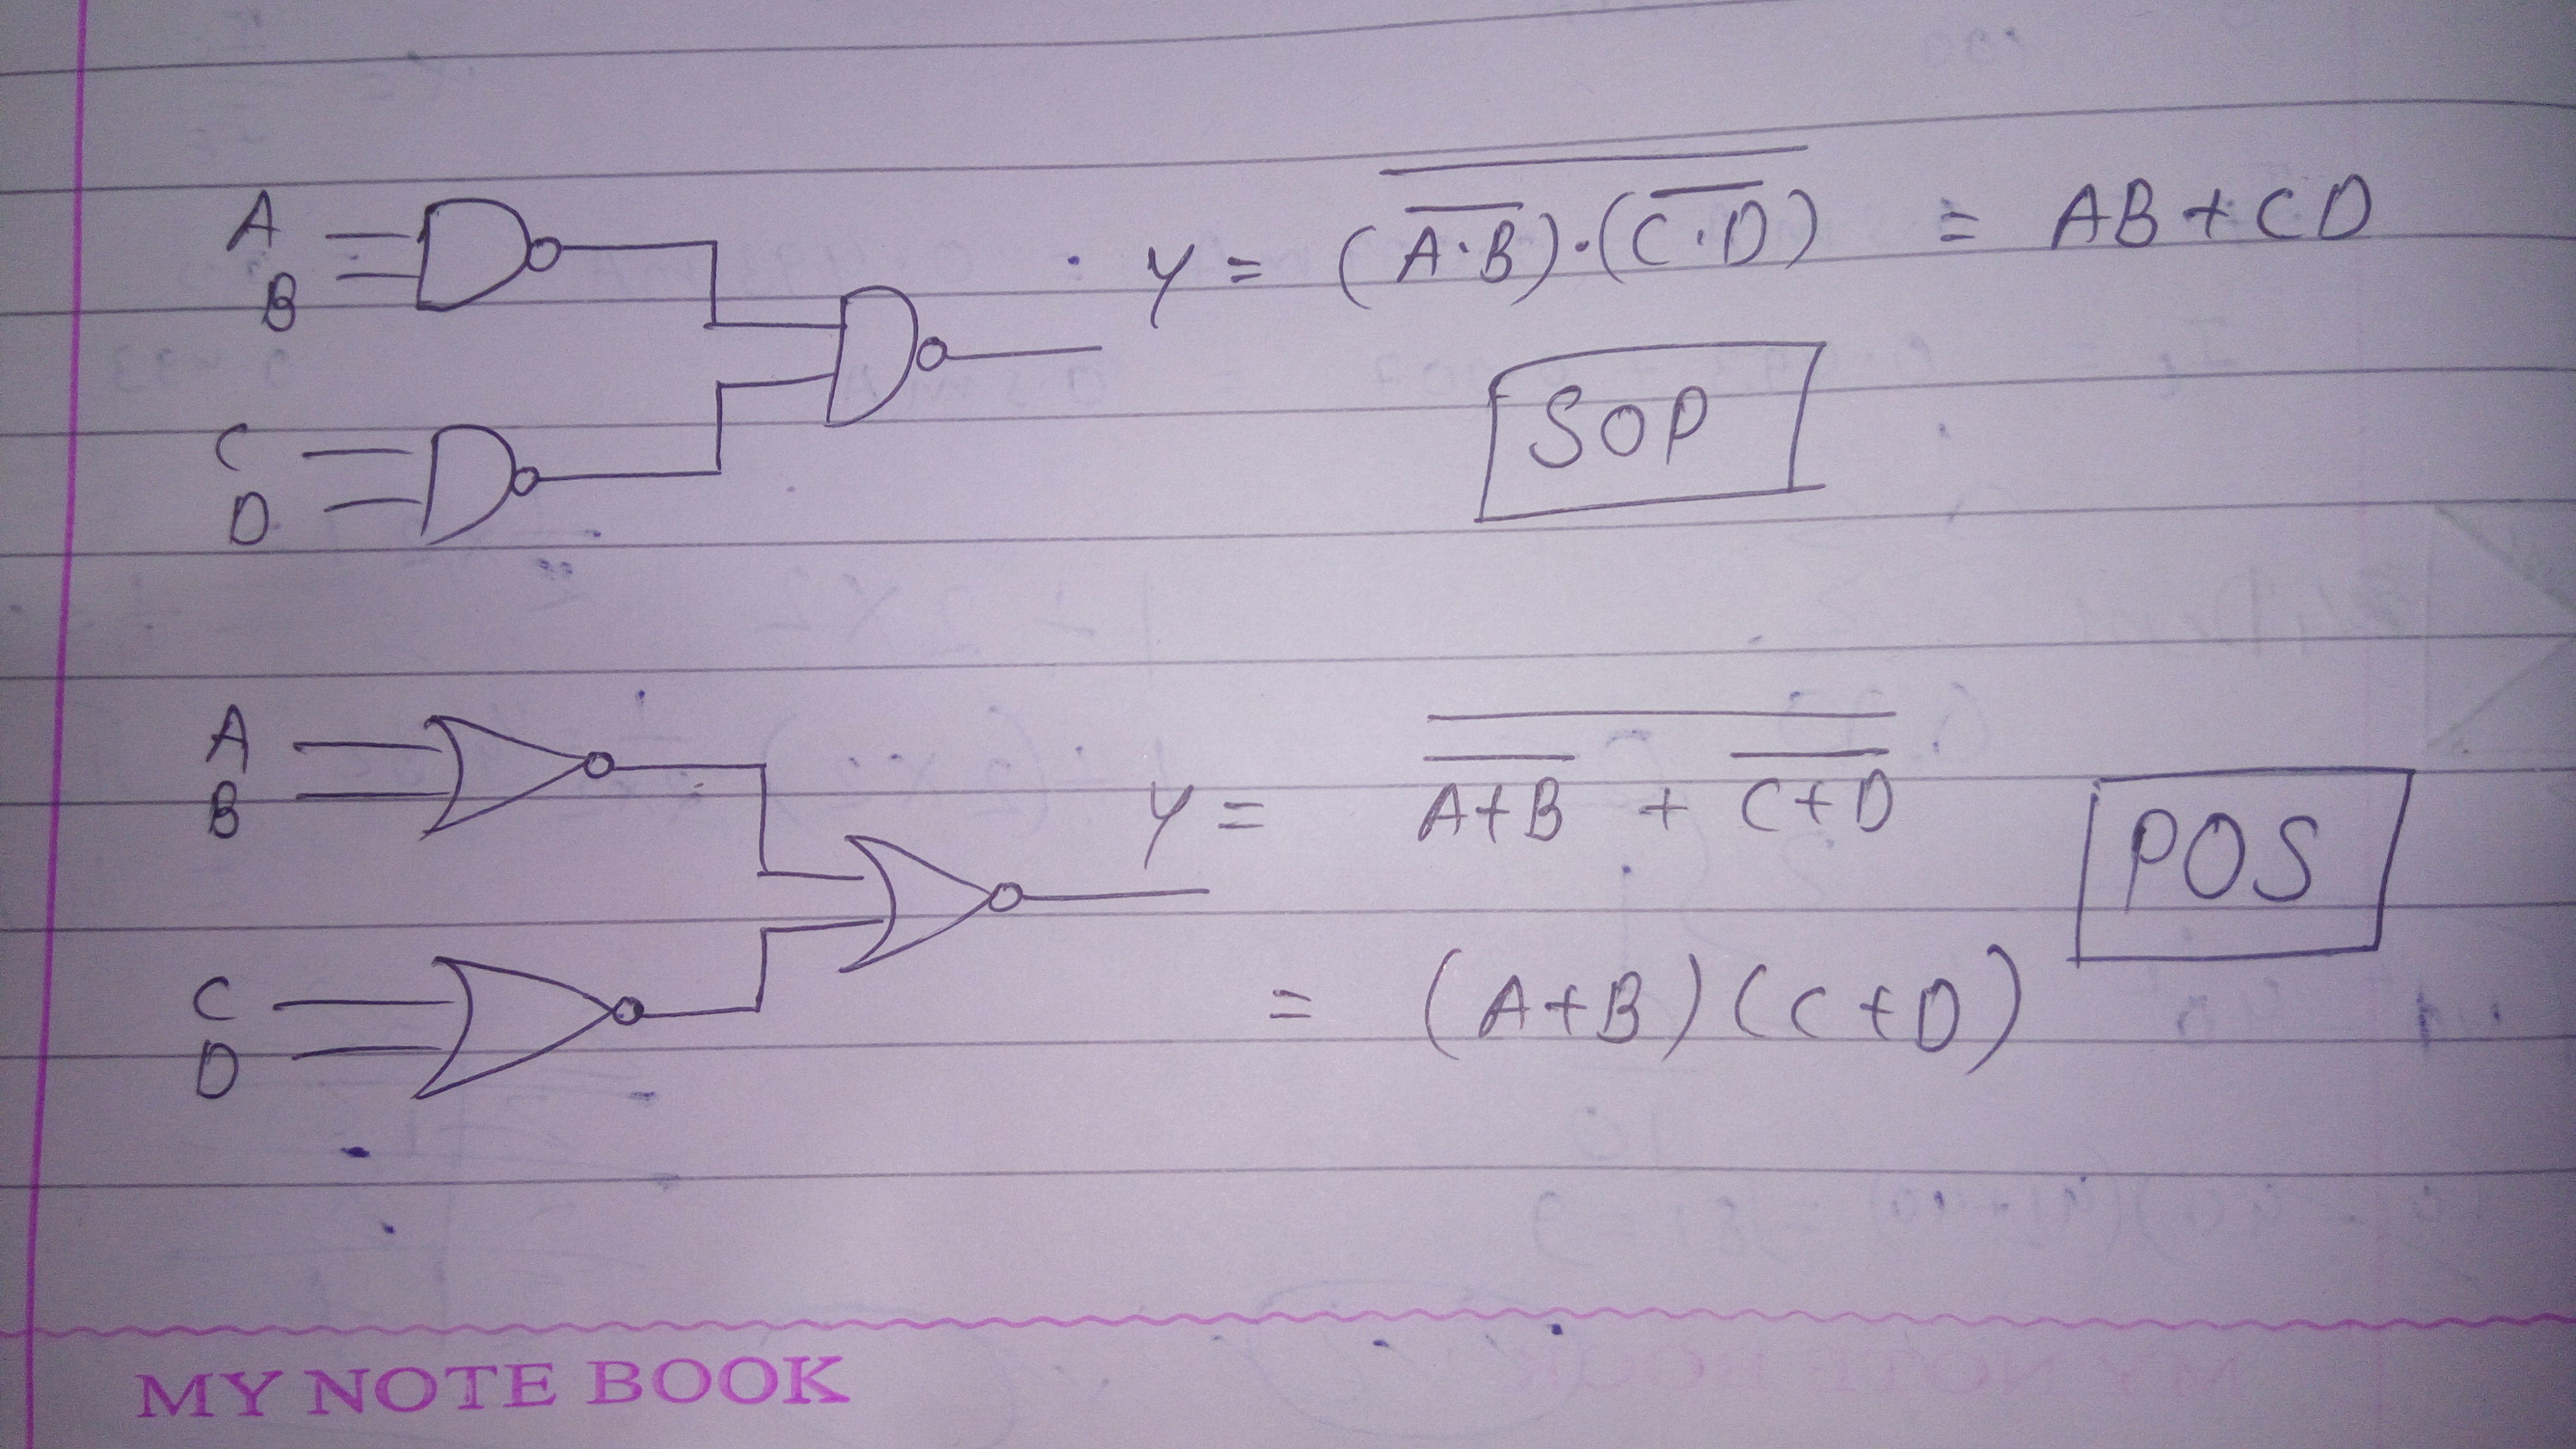 Answer This Question Digital Electronics Neso Academy Forum Logic Diagram Using Only Nand Gates 1506875531753 6604570654096x2304 251 Mb